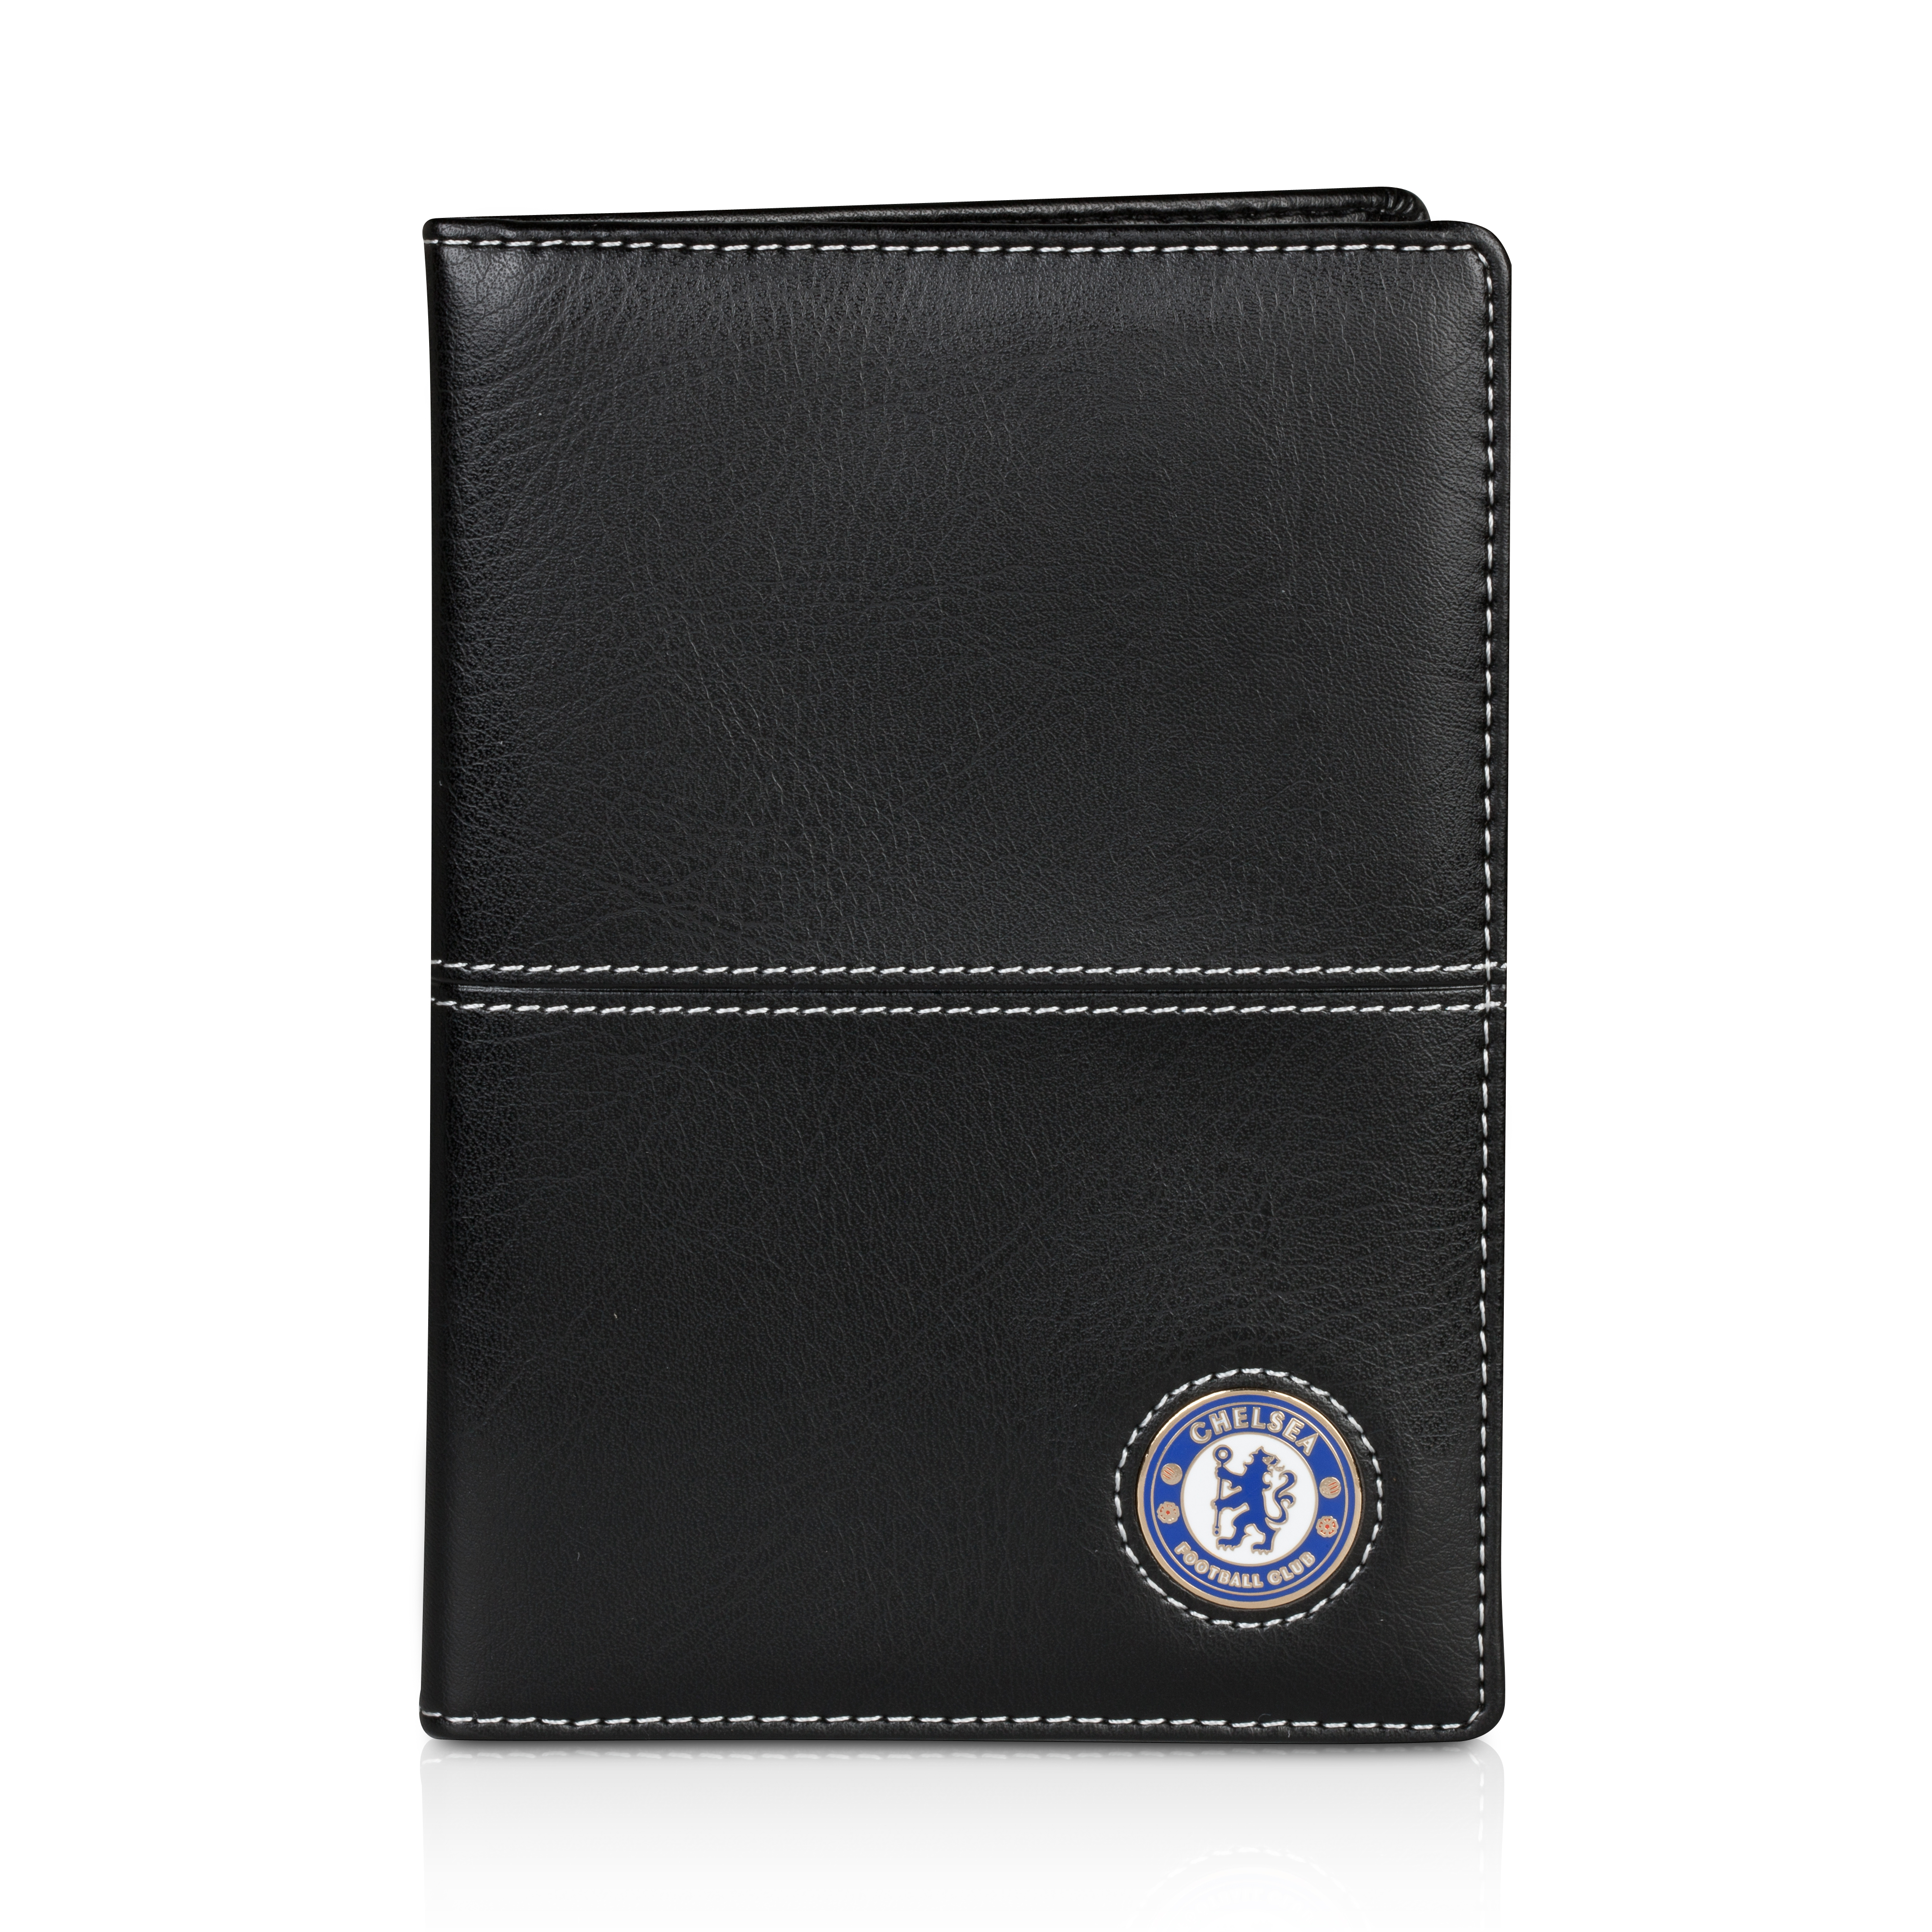 Chelsea Executive Scorecard Holder with Marker